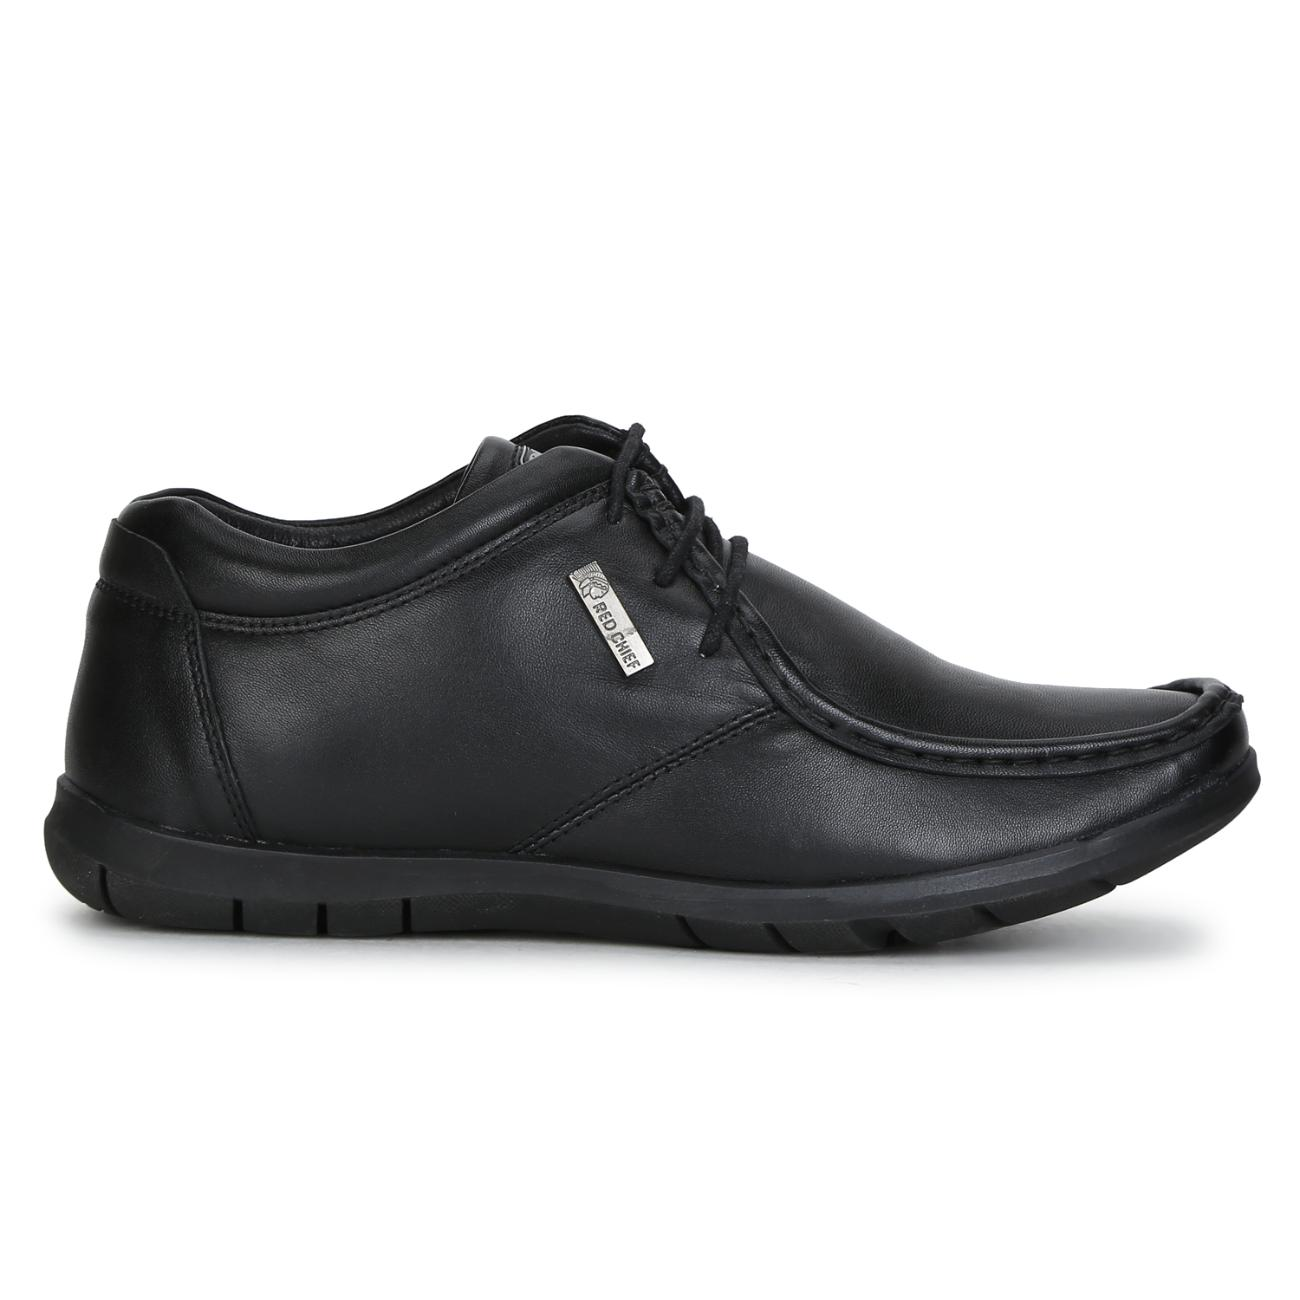 black leather lace up formal shoes side view_2